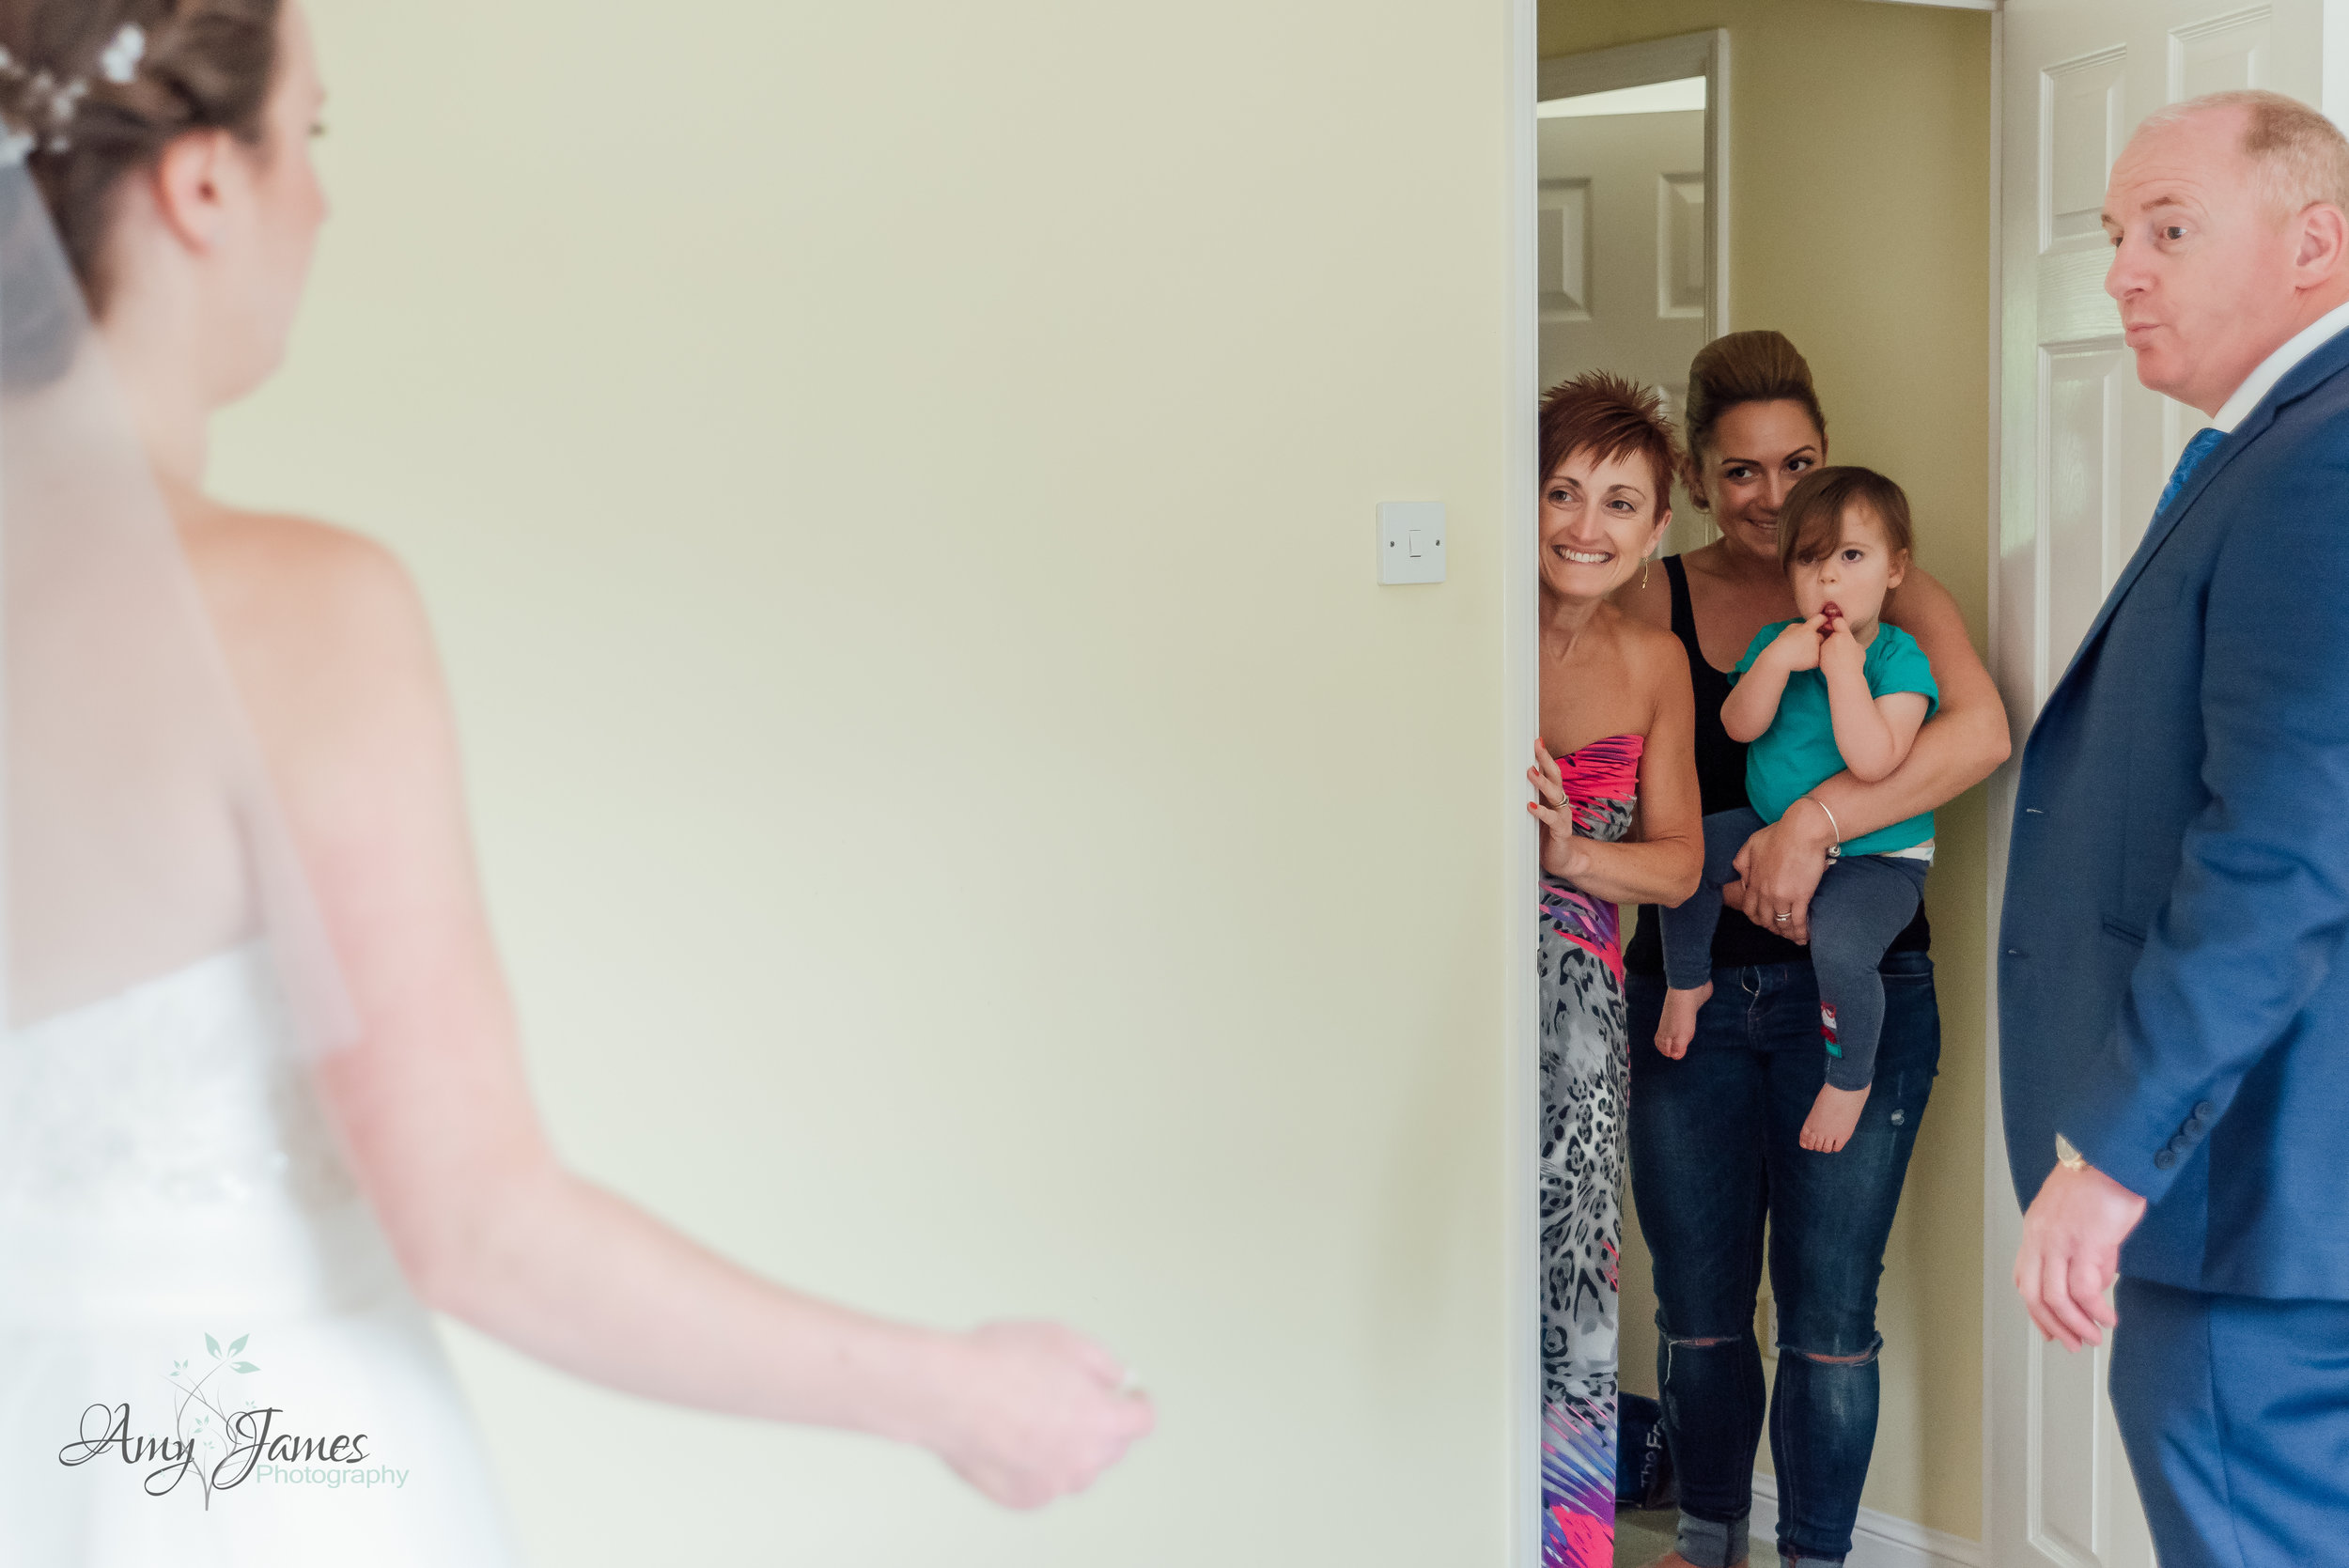 Brides family see her for the first time - First look bridal photograph - Amy James Photography - Taplins Place Wedding Hampshire